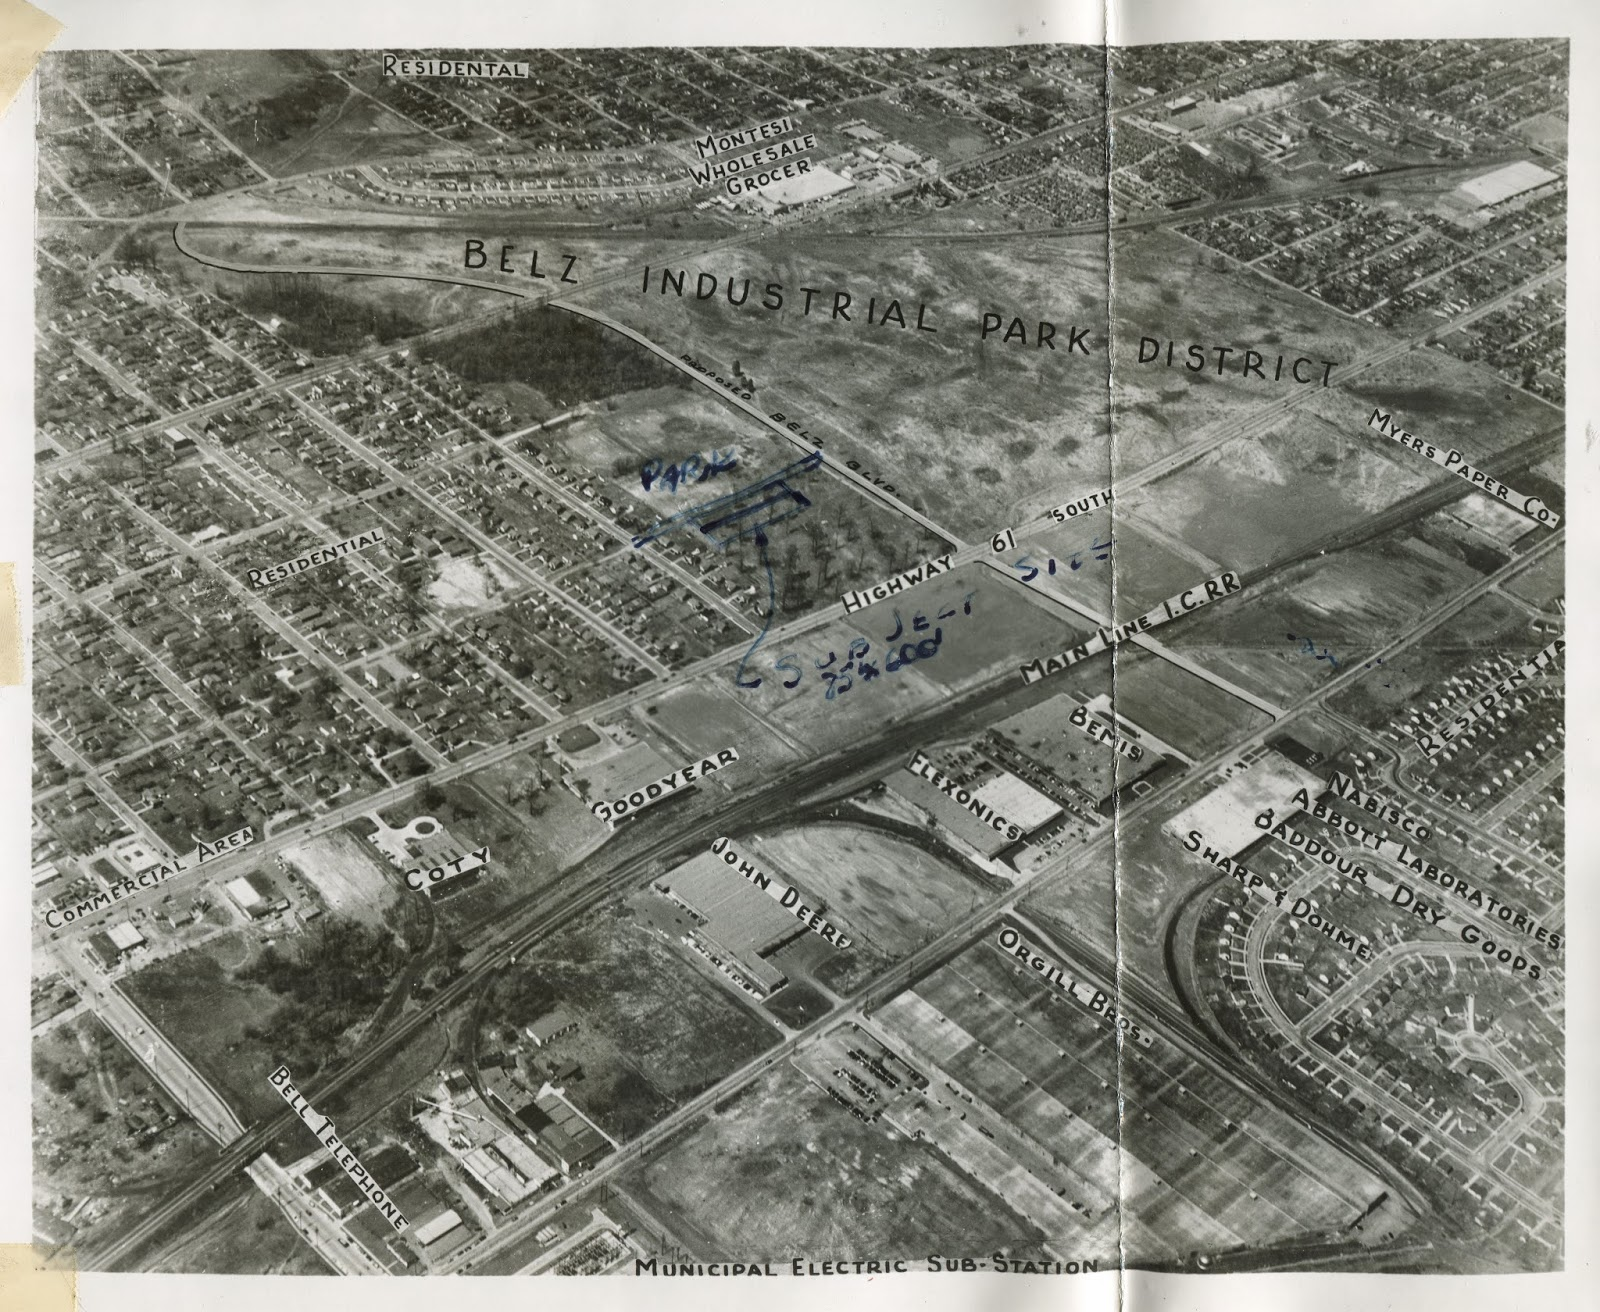 63102dfa This aerial from the time the shopping center was planned shows the  still-developing Belz Industrial Park District at the intersection of South  Third ...